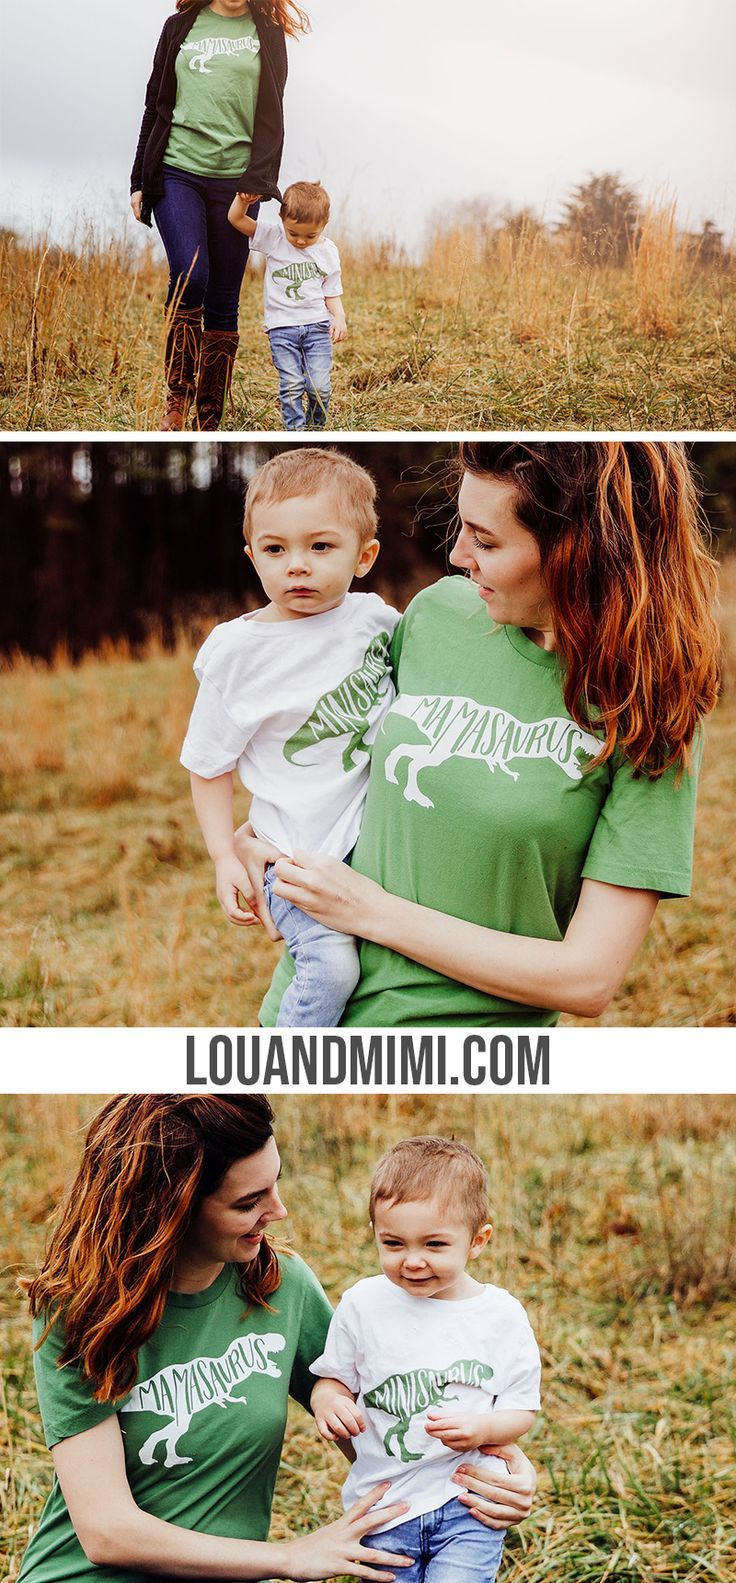 2992a52024 Mamasaurus and Minisaurus Rex matching mom and son t-shirts!! Ok these are  too cute! What a fun mommy and boy outfit idea. They d be so cute for a boy  mom ...